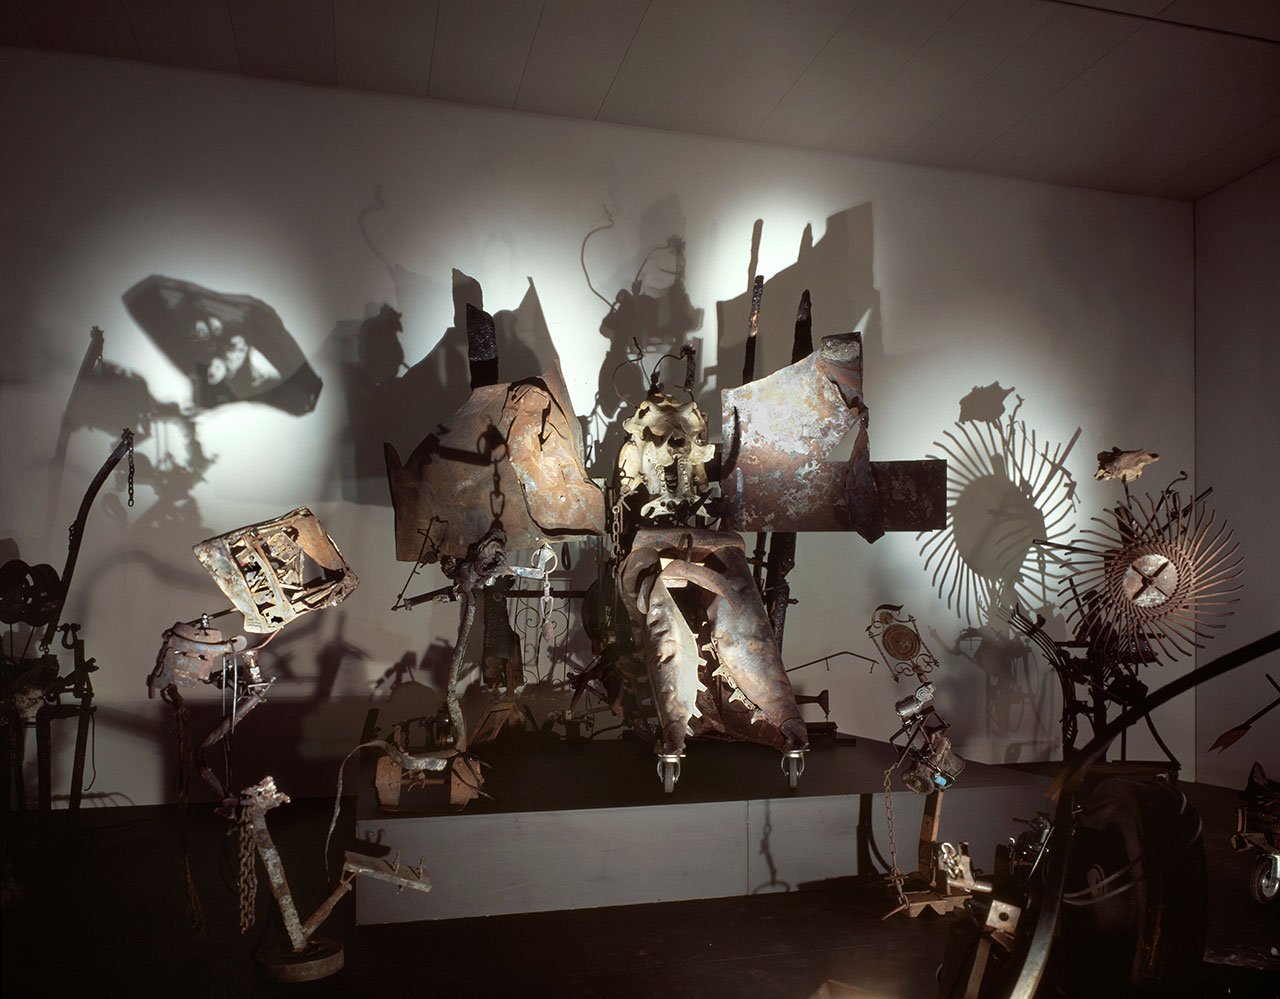 Jean Tinguely, Mengele-Totentanz (Hoch-Altar) with the four acolytes Bischof, Gemütlichkeit, Schnapsflasche and Television, 1986. Collection Museum Tinguely Basel - a cultural commitment of Roche. Photo by Christian Baur, c/o Pictoright Amsterdam, 2016.